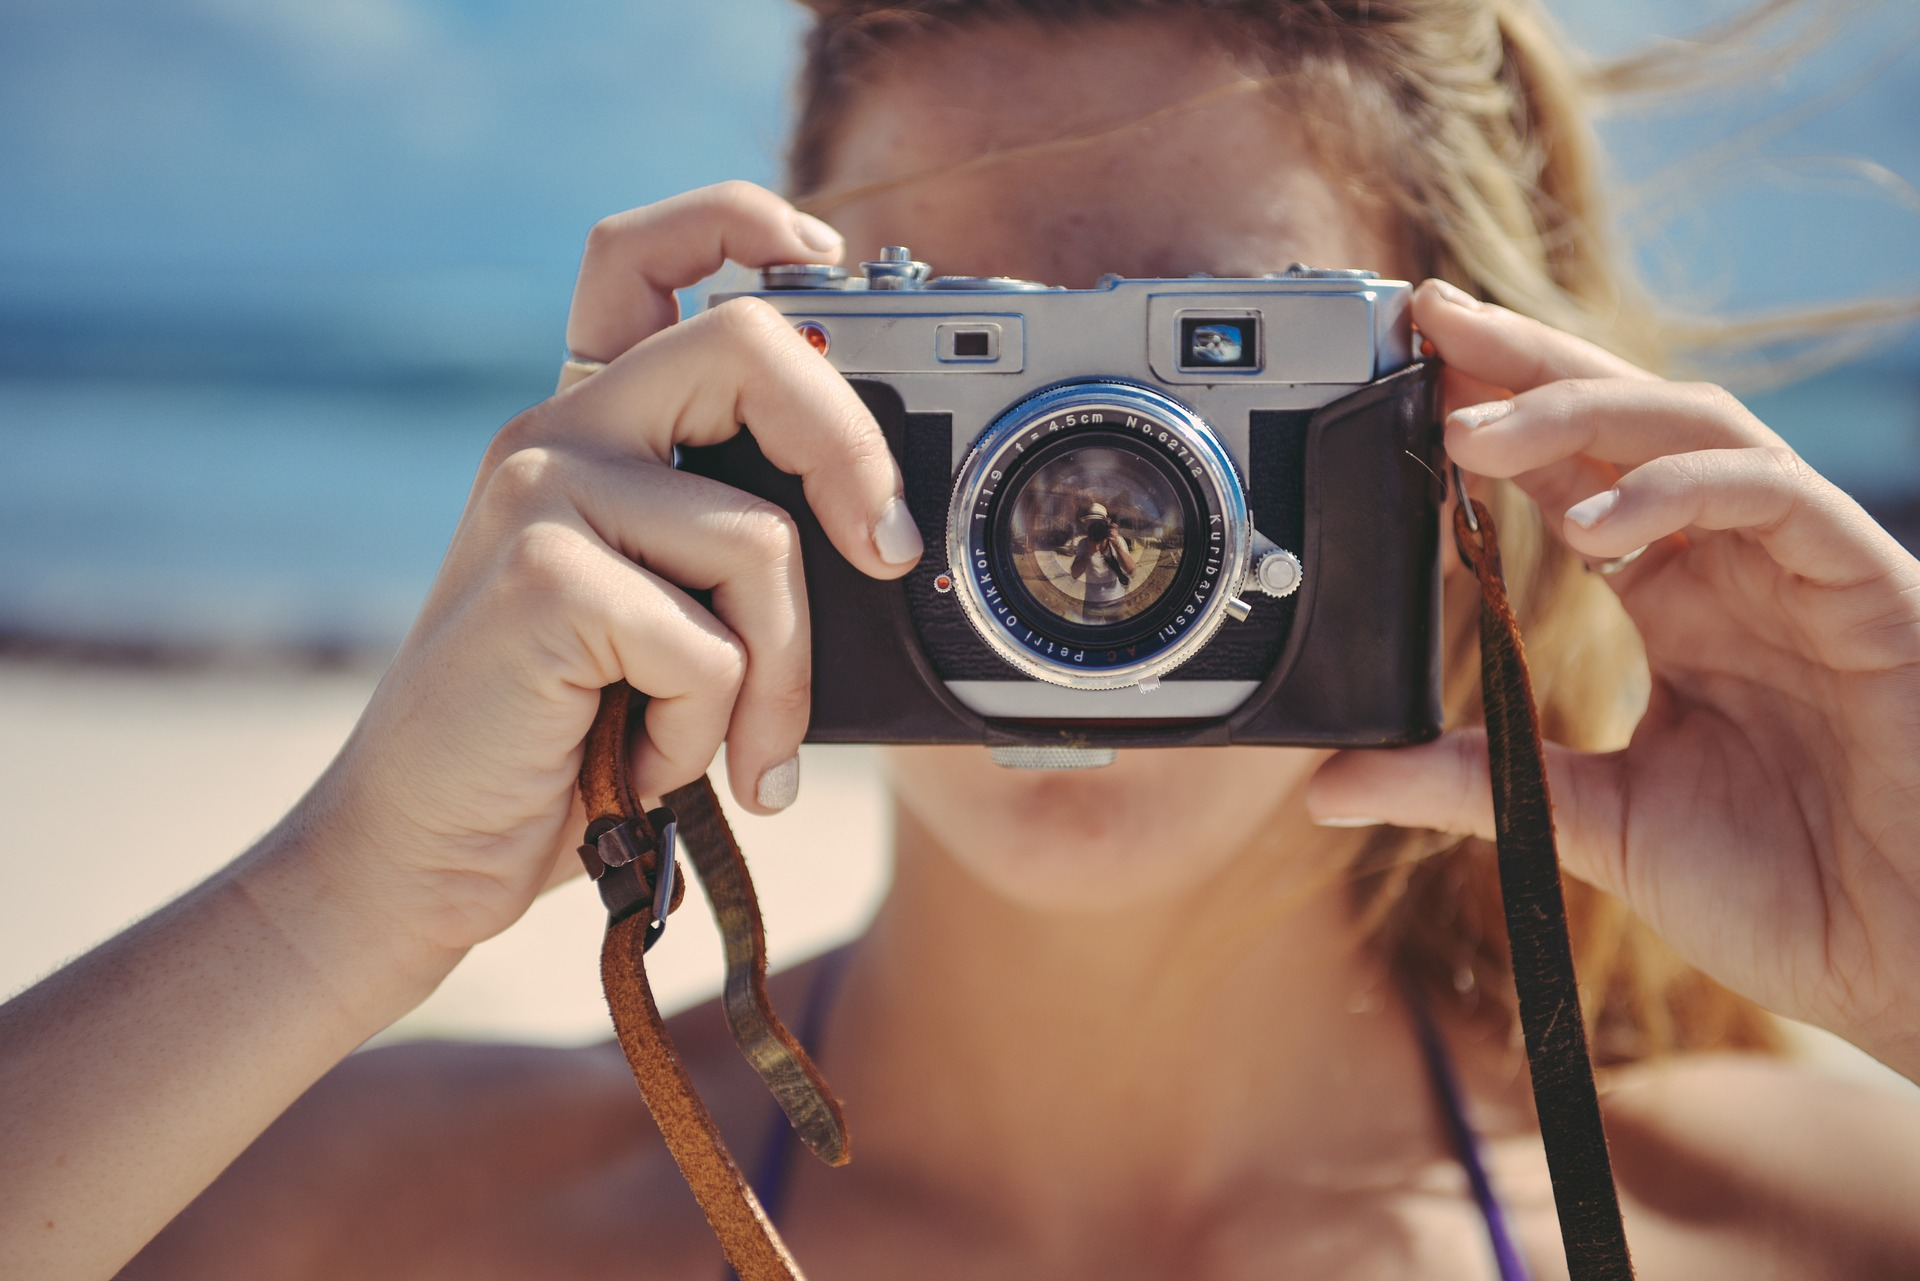 Blonde girl with camera taking picture